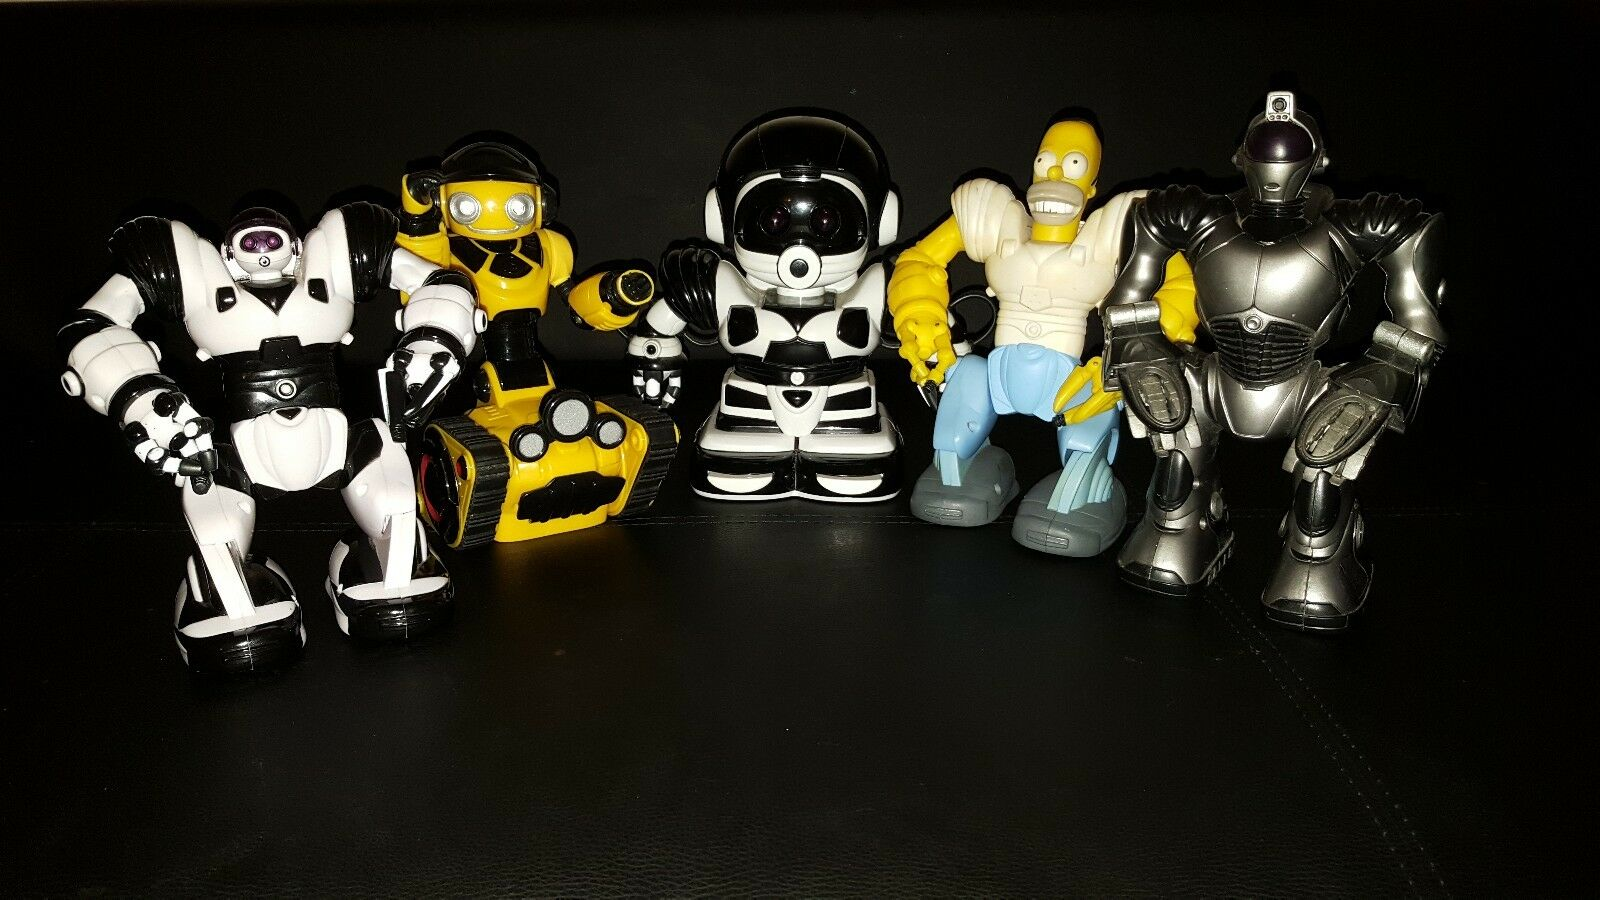 WowWee Mini Robot Collection - 5 Robots - Superb Condition